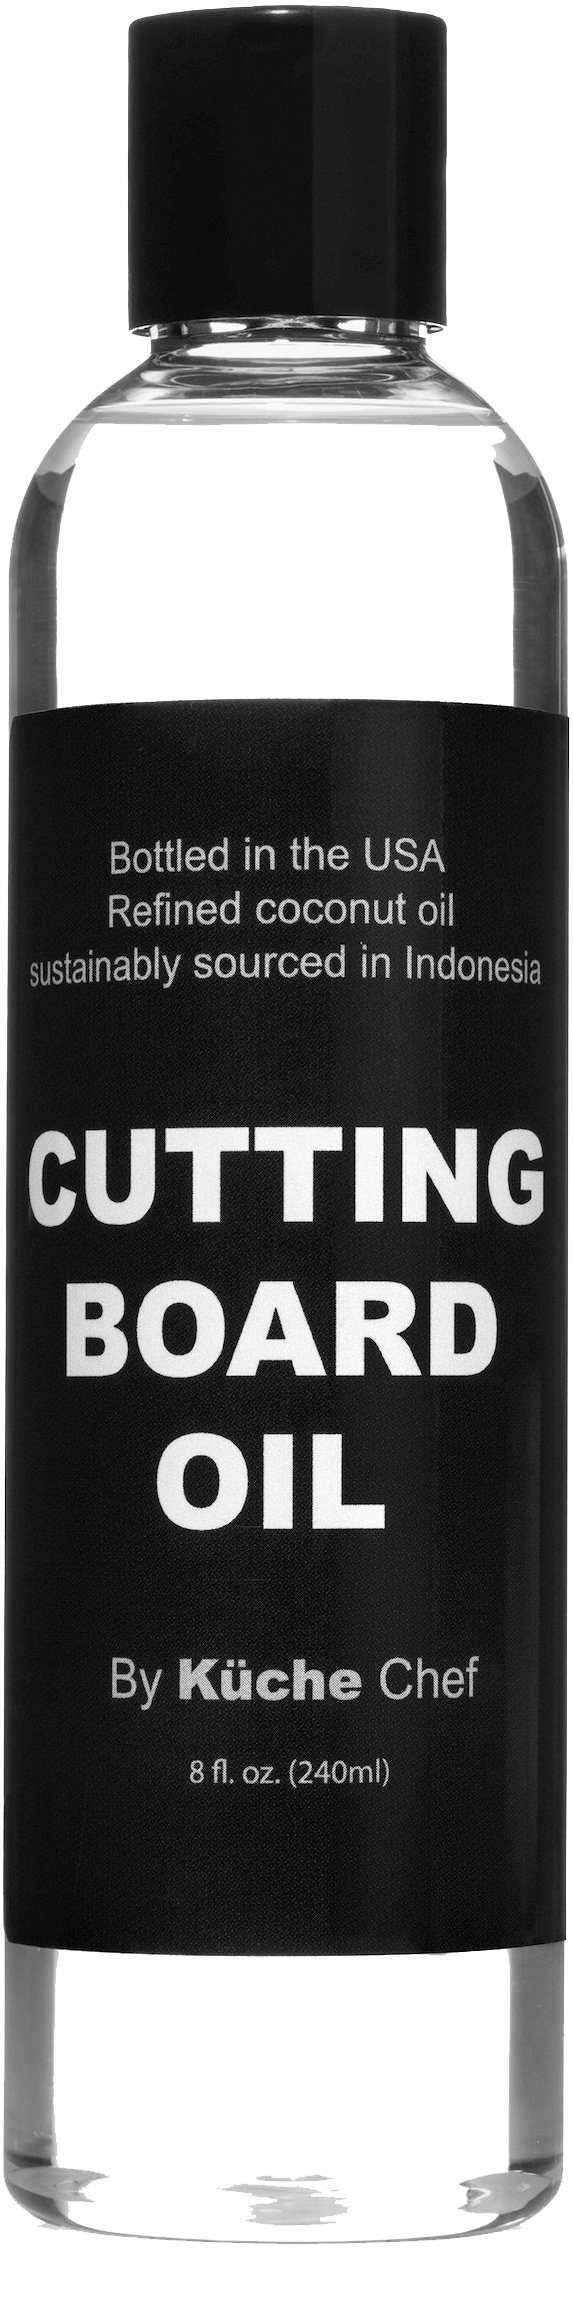 cutting-board-oil